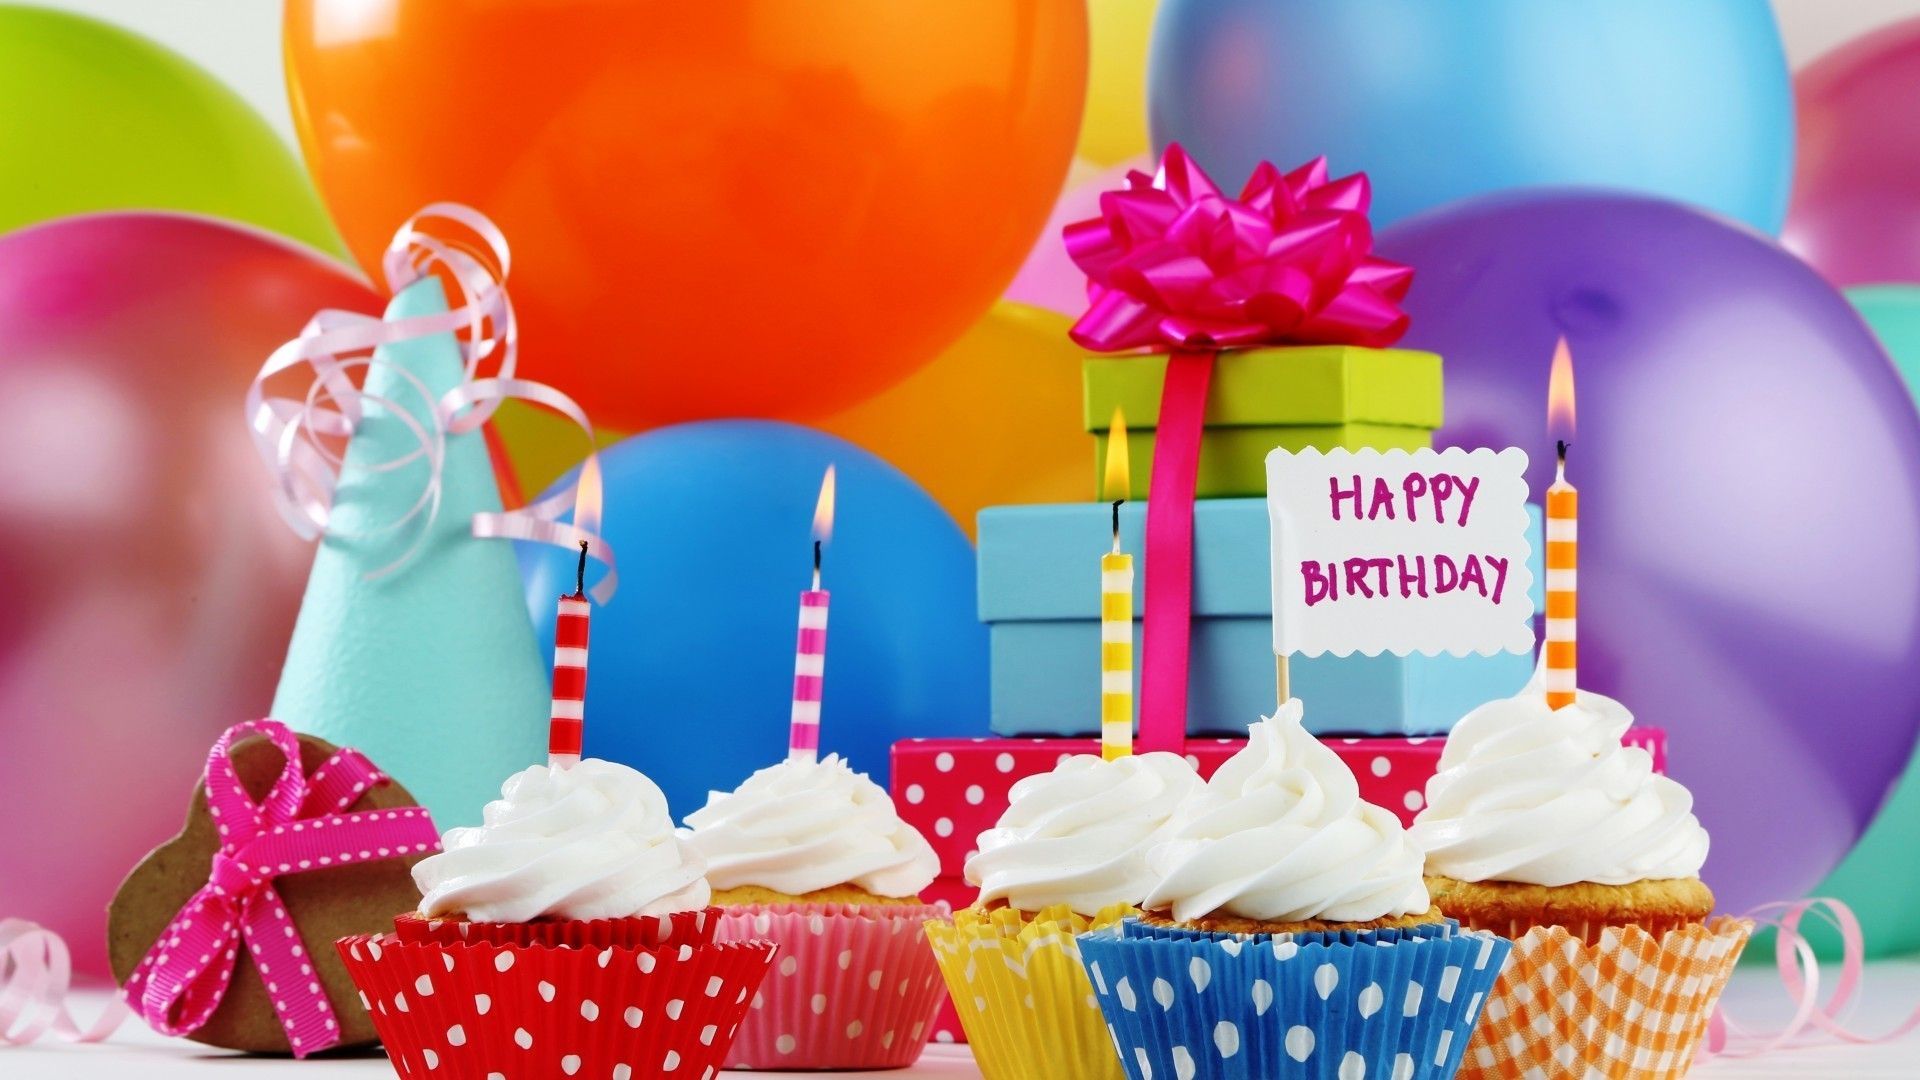 Res: 1920x1080, happy birthday cupcake wallpaper backgrounds hd wallpapers cool images  download free amazing smart phones colourful widescreen